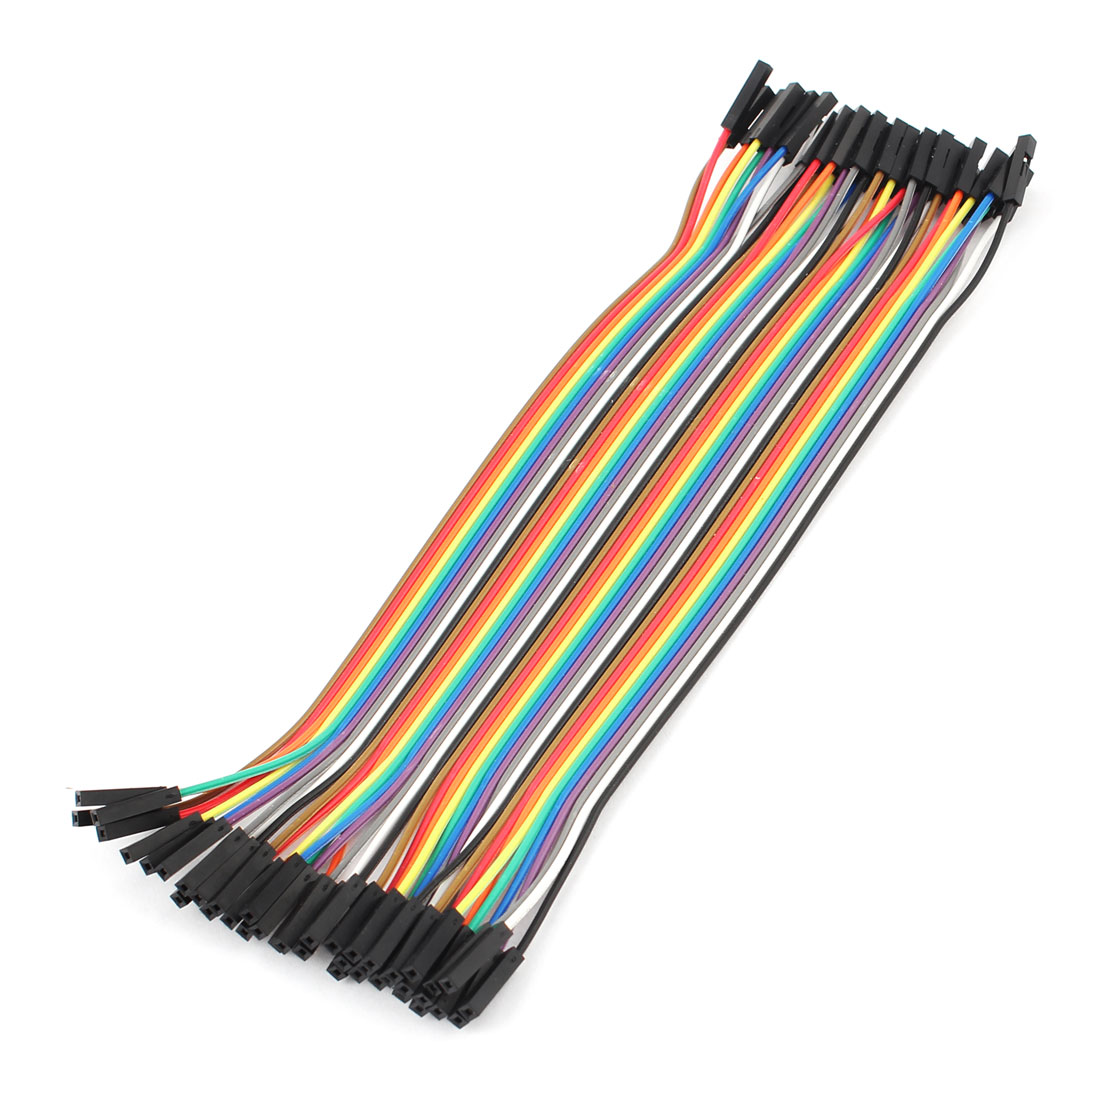 40 Pcs 1P-1P Female Breadboard Jumper Cable Wire 20cm Raspberry pi